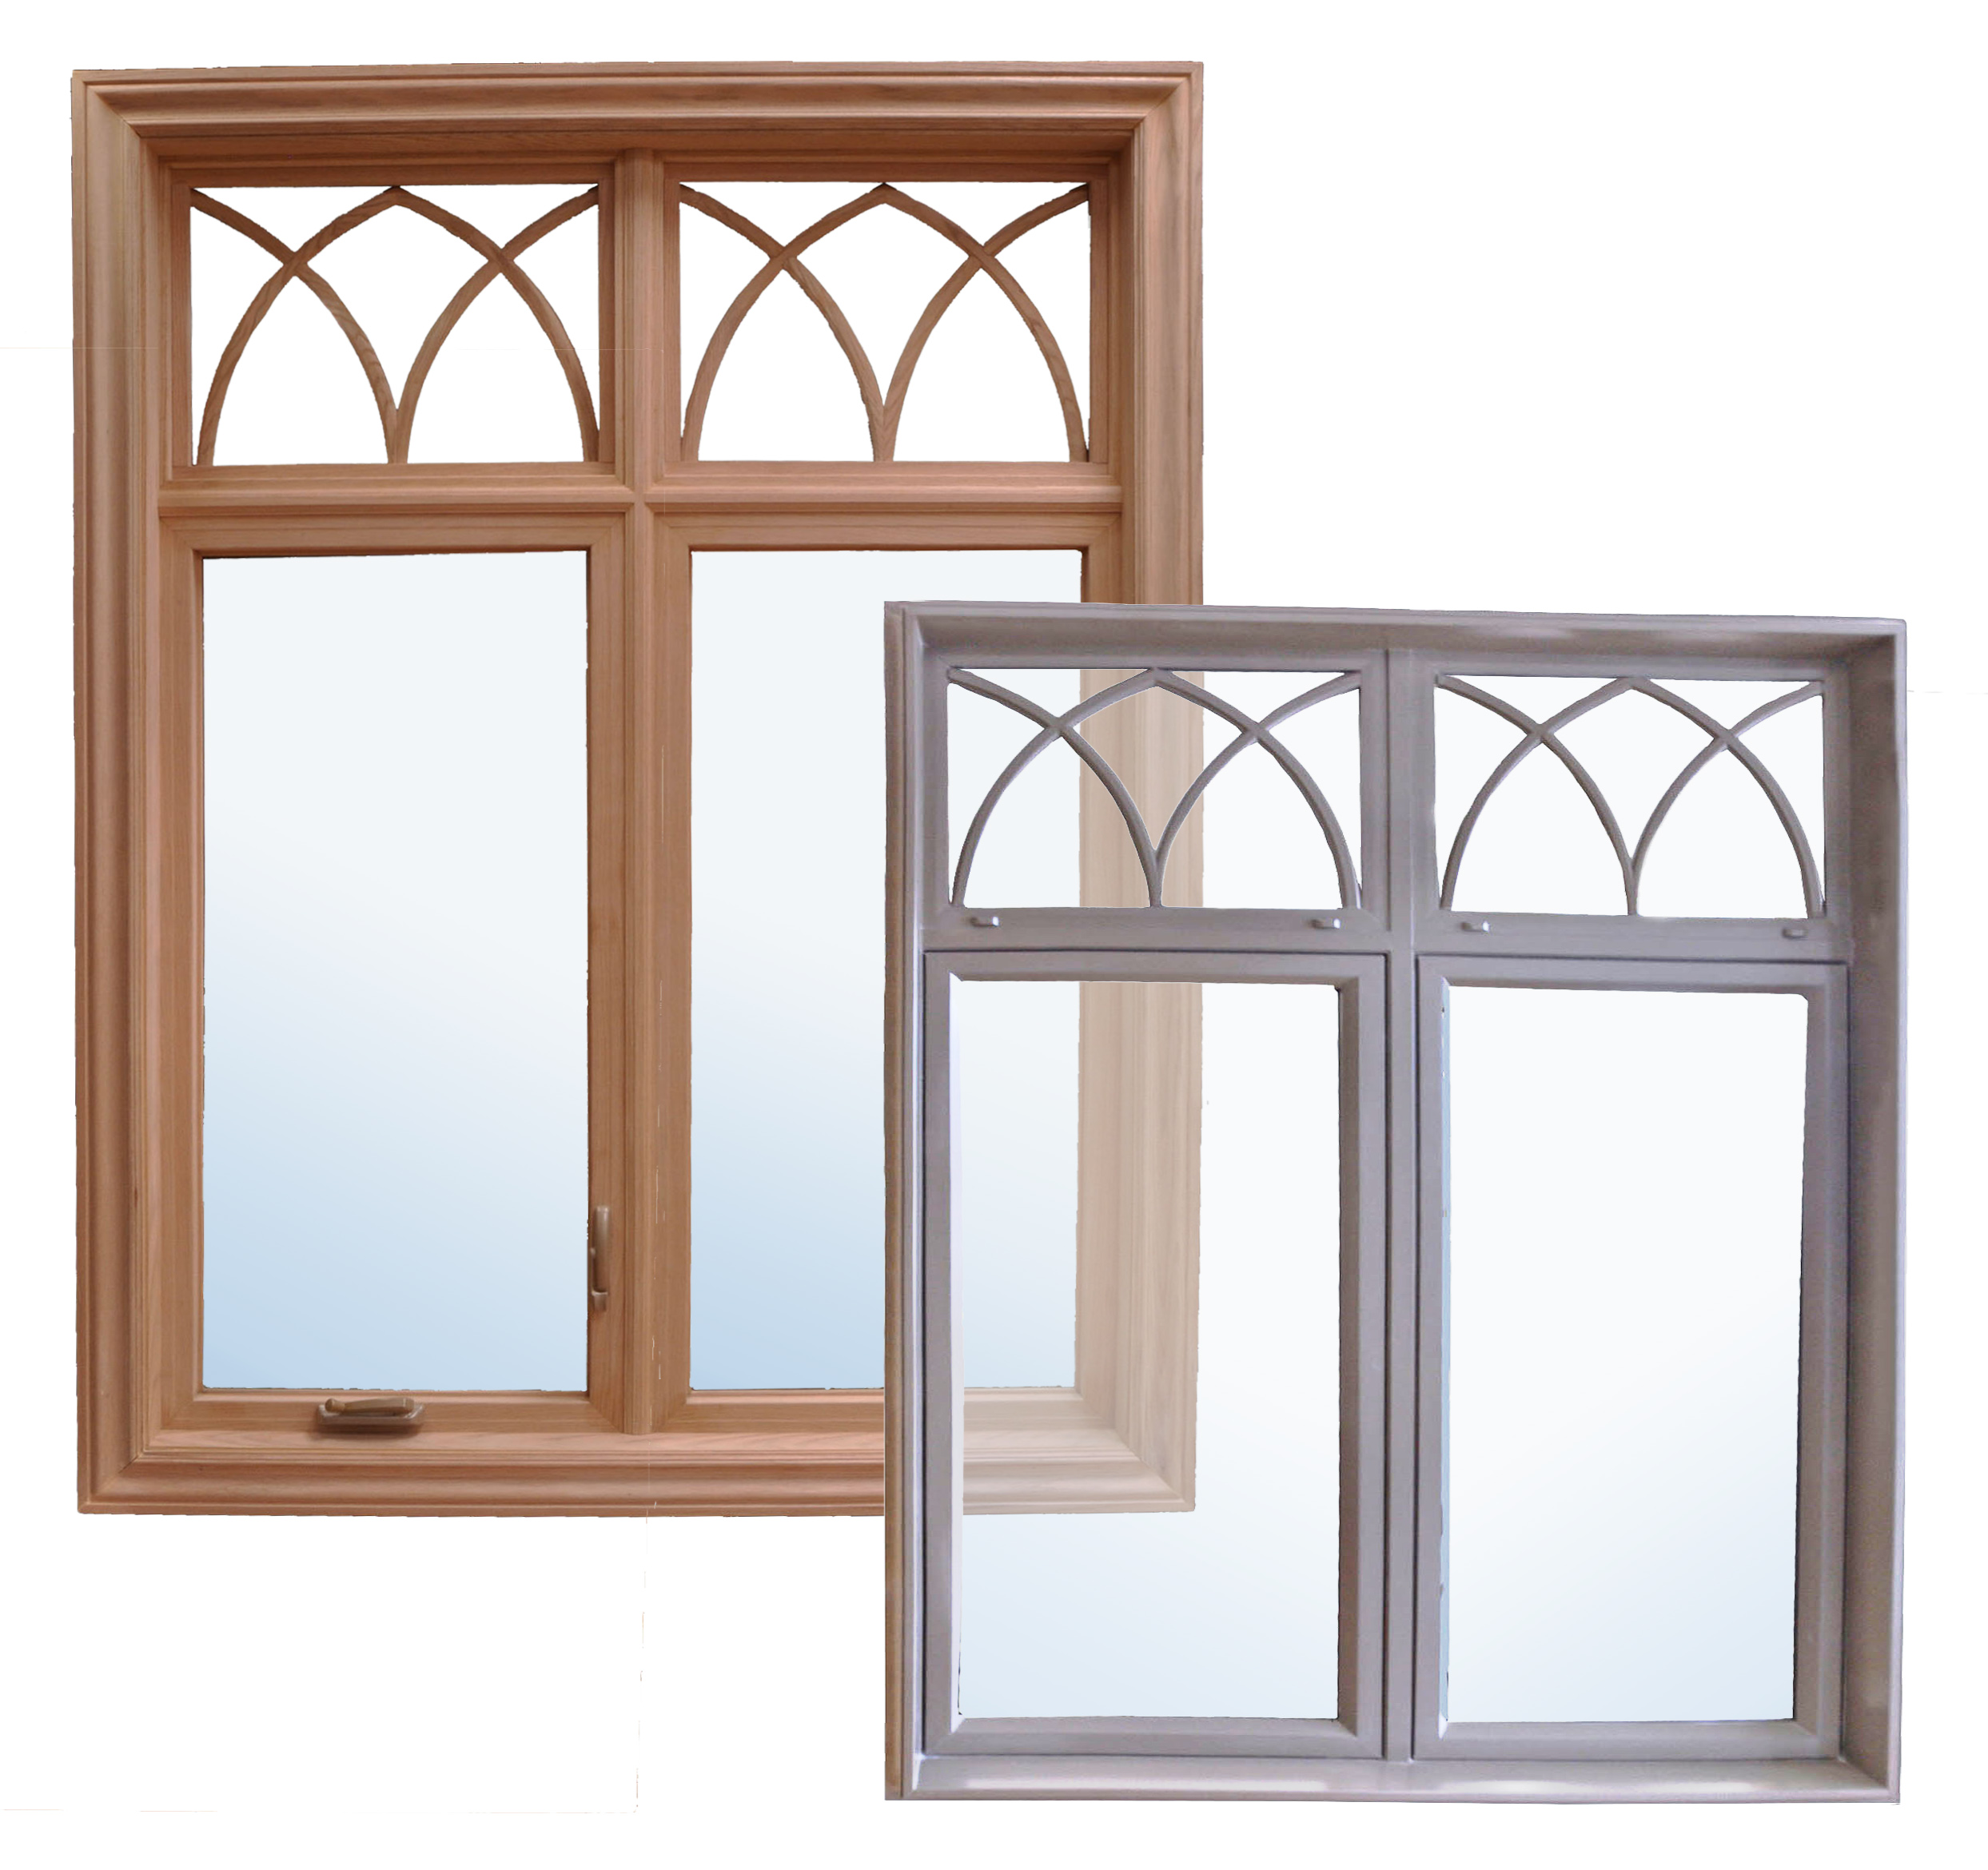 Fibertec Window \u0026 Door Mfg. Ltd.  sc 1 st  BPM Select & BPM Select - The Premier Building Product Search Engine | fiber-glass